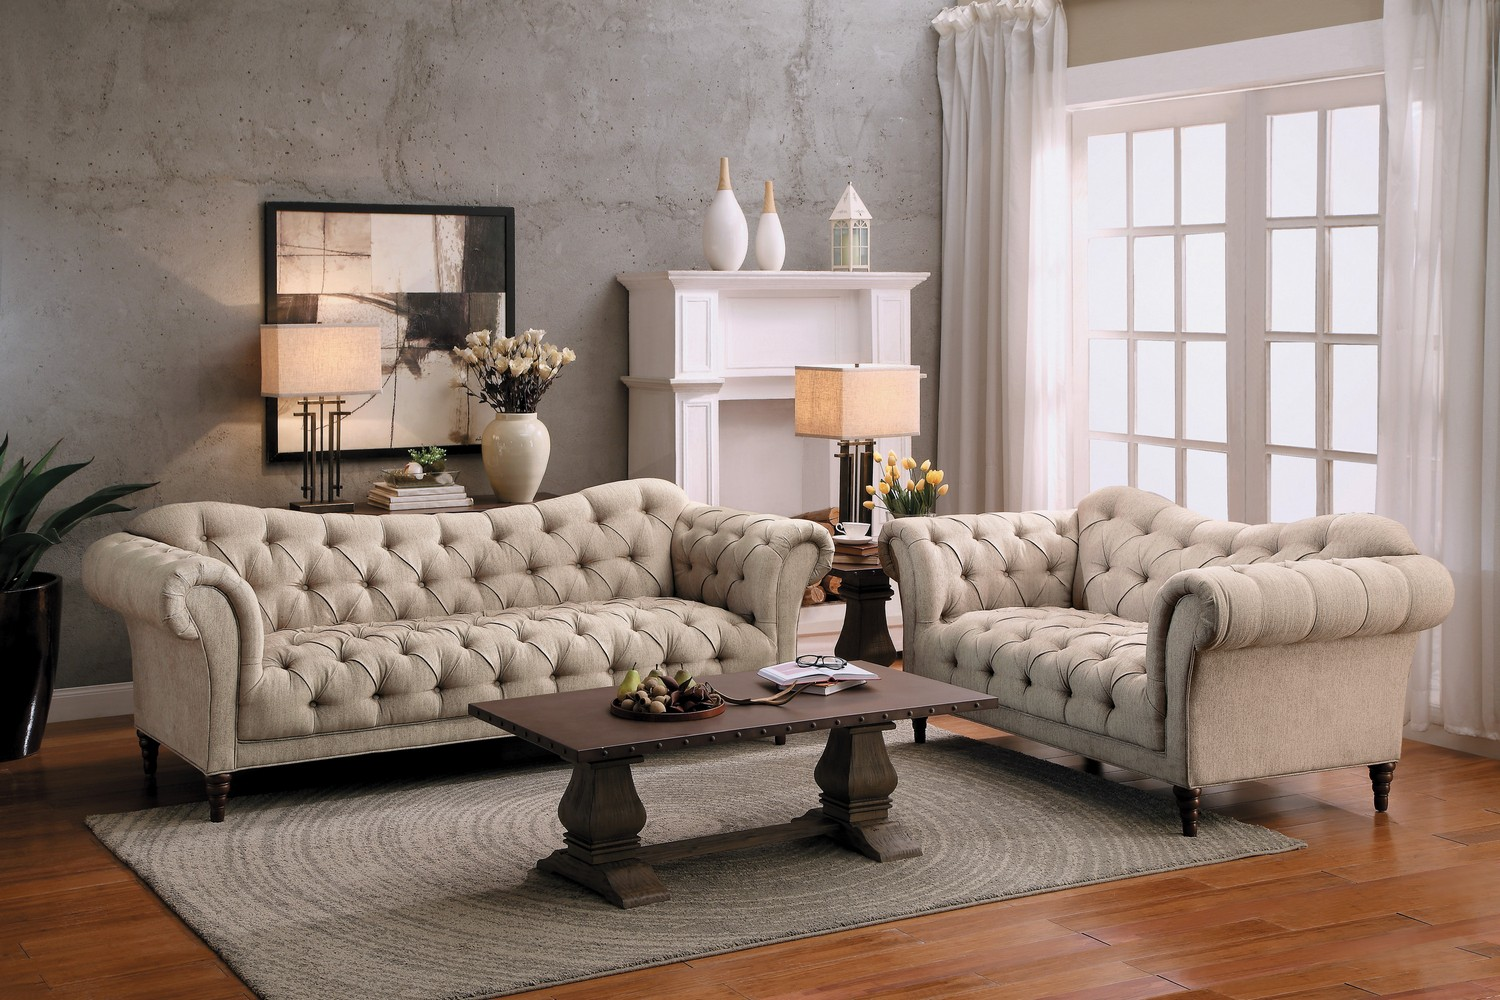 Homelegance St. Claire Sofa Set - Polyester - Brown Tone